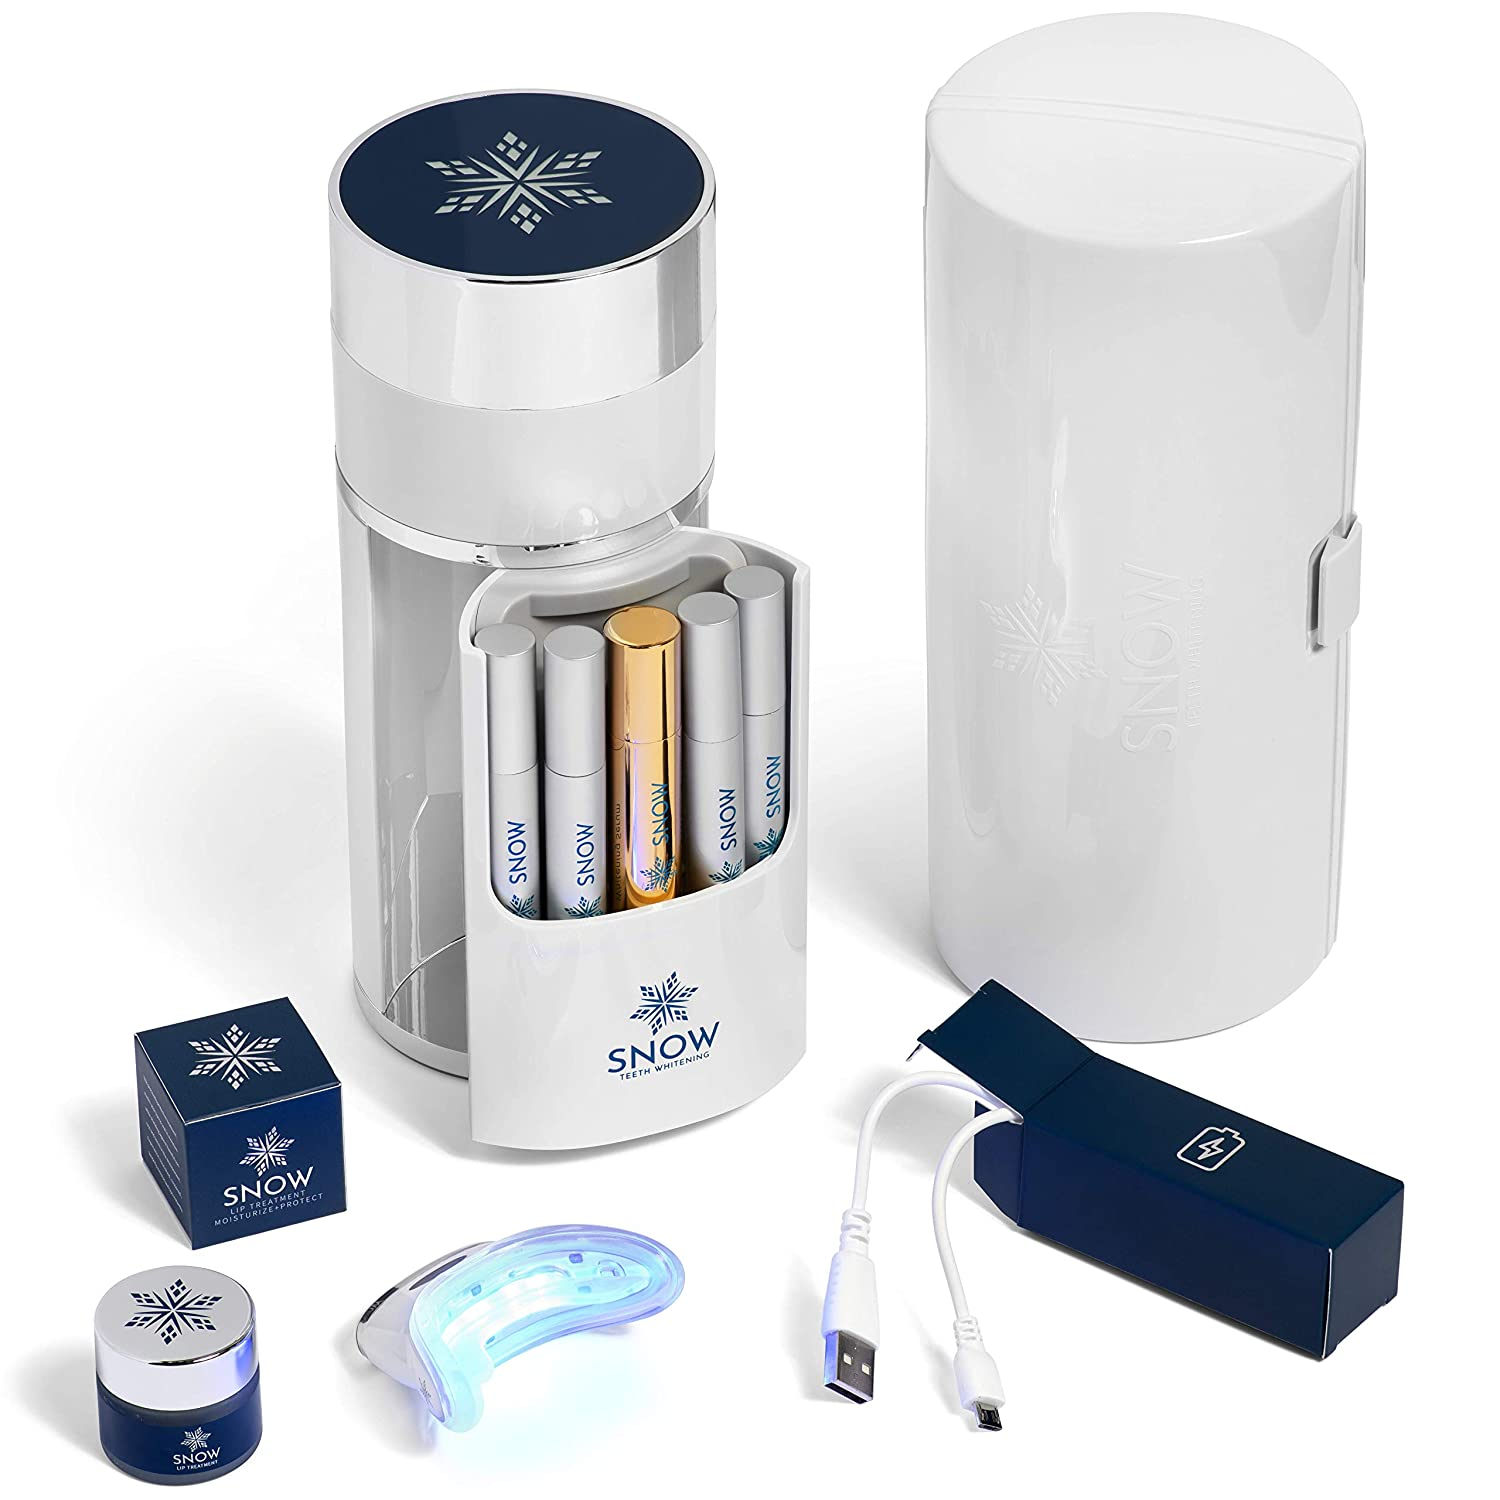 Snow Wireless Teeth Whitening Kit - All-in-One System with LED Light - Natural White Teeth At-Home in Minutes